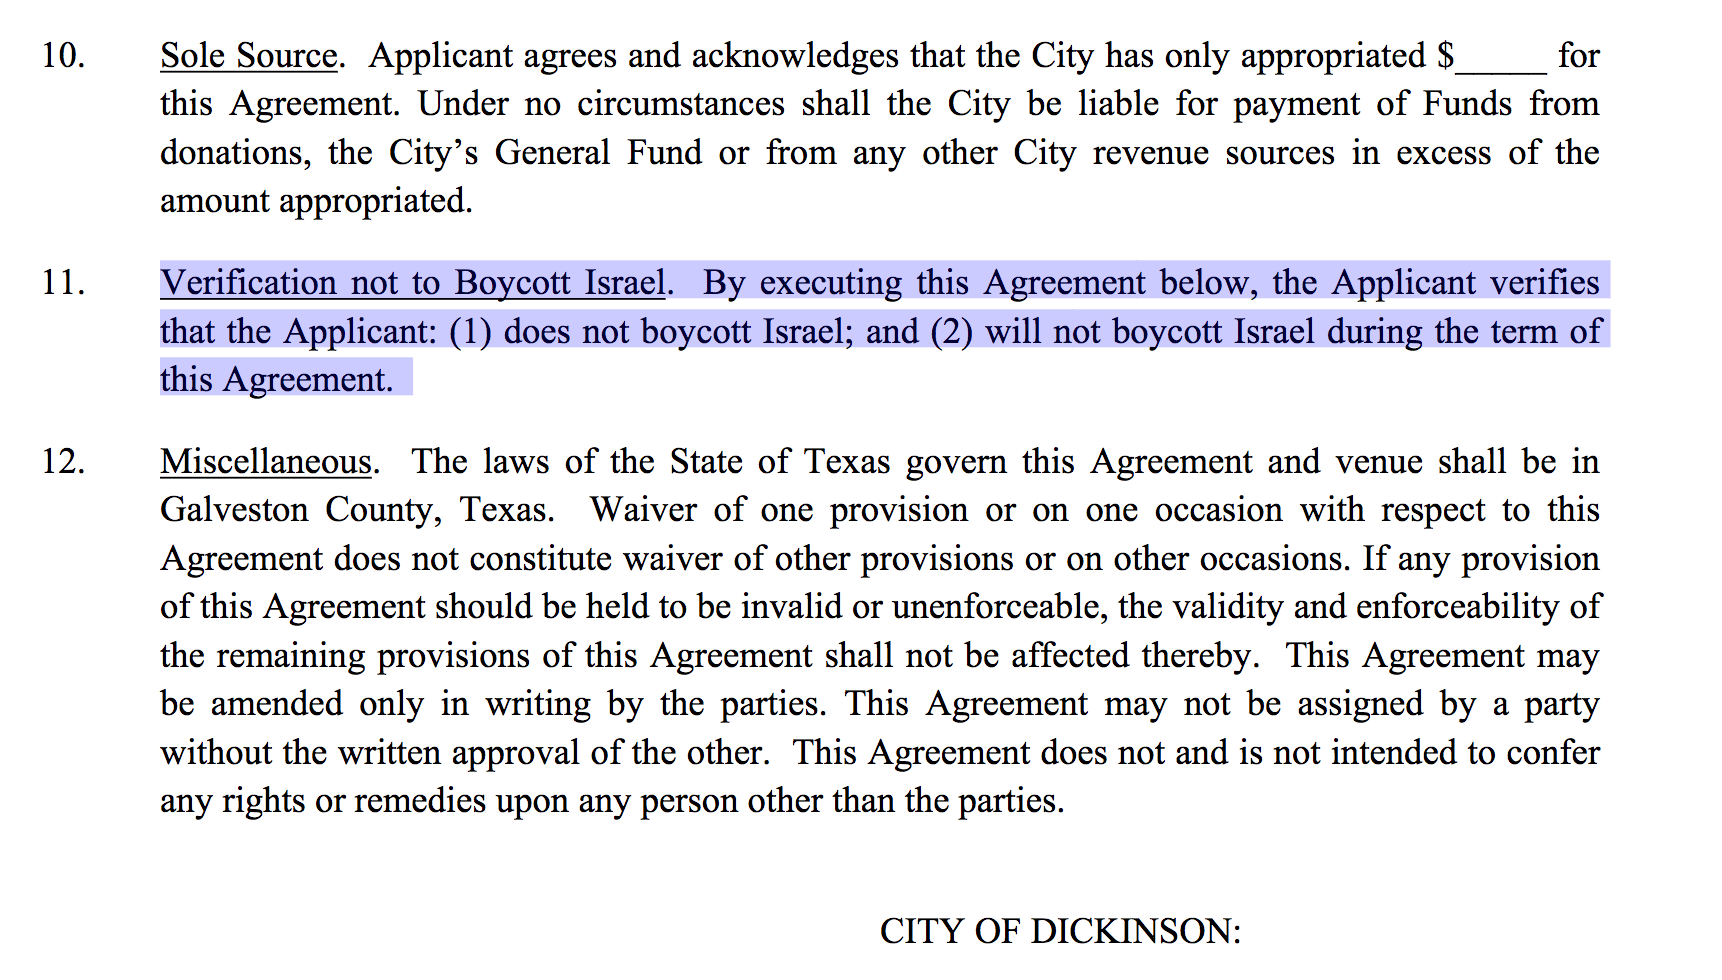 City of Dickinson defends Harvey relief requirement regarding Israel